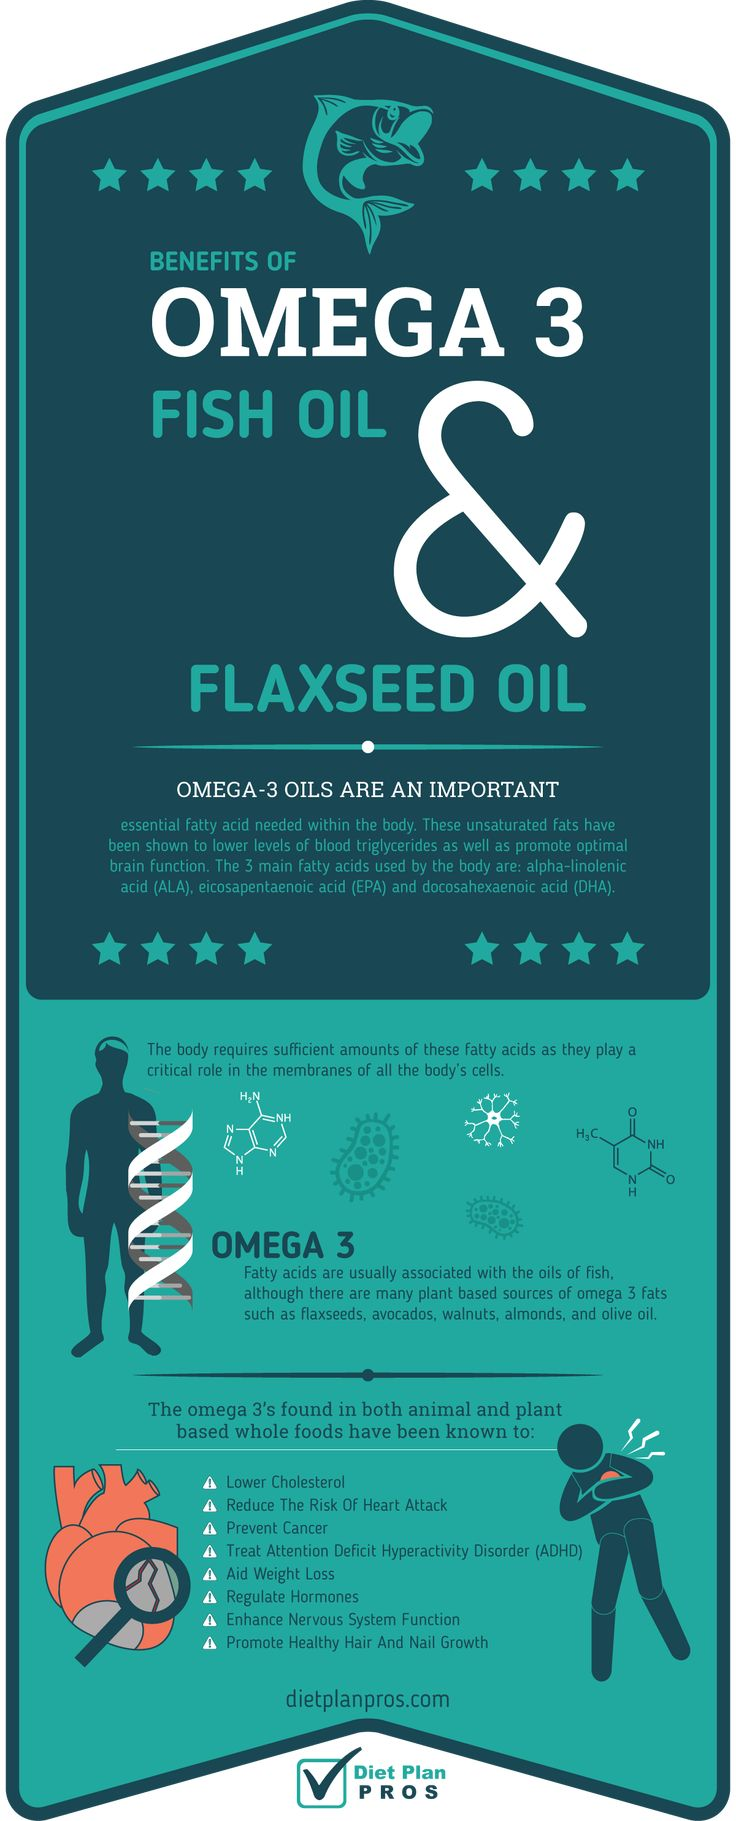 Benefits of Omega 3 Oils: Omega-3 oils are an important, essential fatty acid needed within the body. These unsaturated fats have been shown to lower levels of blood triglycerides as well as promote optimal brain function. The 3 main fatty acids used by the body are: alpha-linolenic acid (ALA), eicosapentaenoic acid (EPA) and docosahexaenoic acid (DHA). The body requires sufficient amounts of these fats as they play a critical role in the membranes of all the body's cells